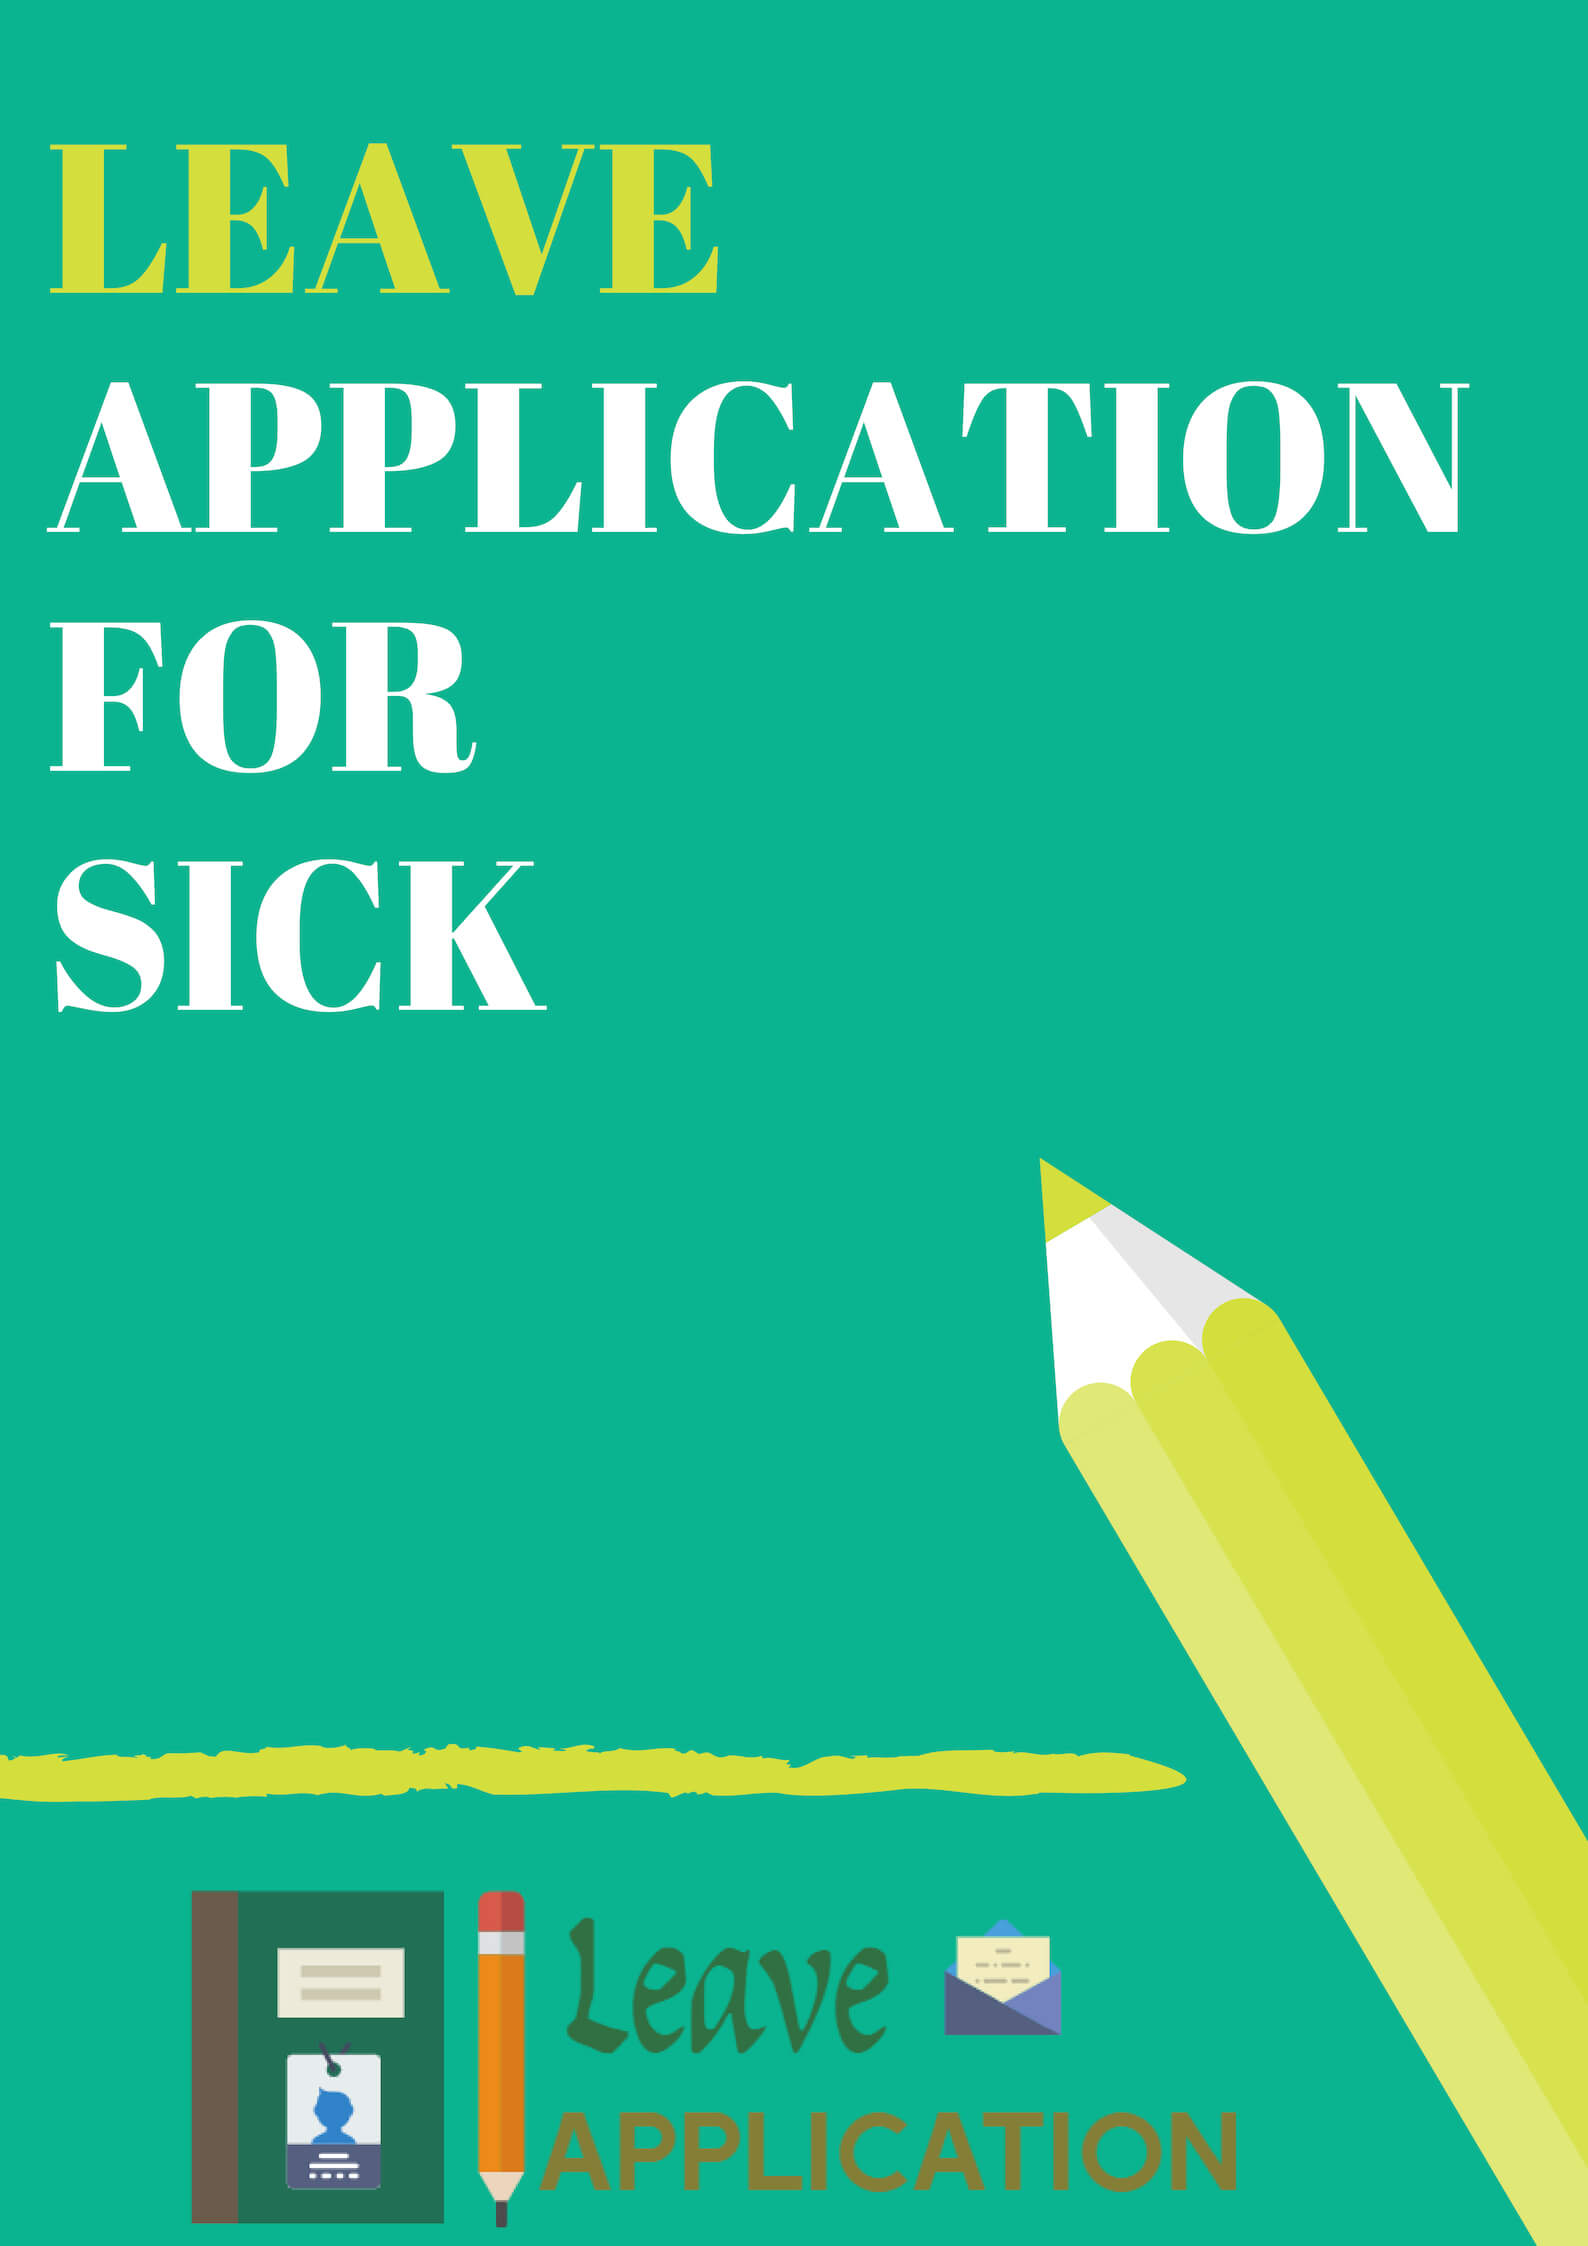 Sick Leave Application For School Office Students Leaveapplication